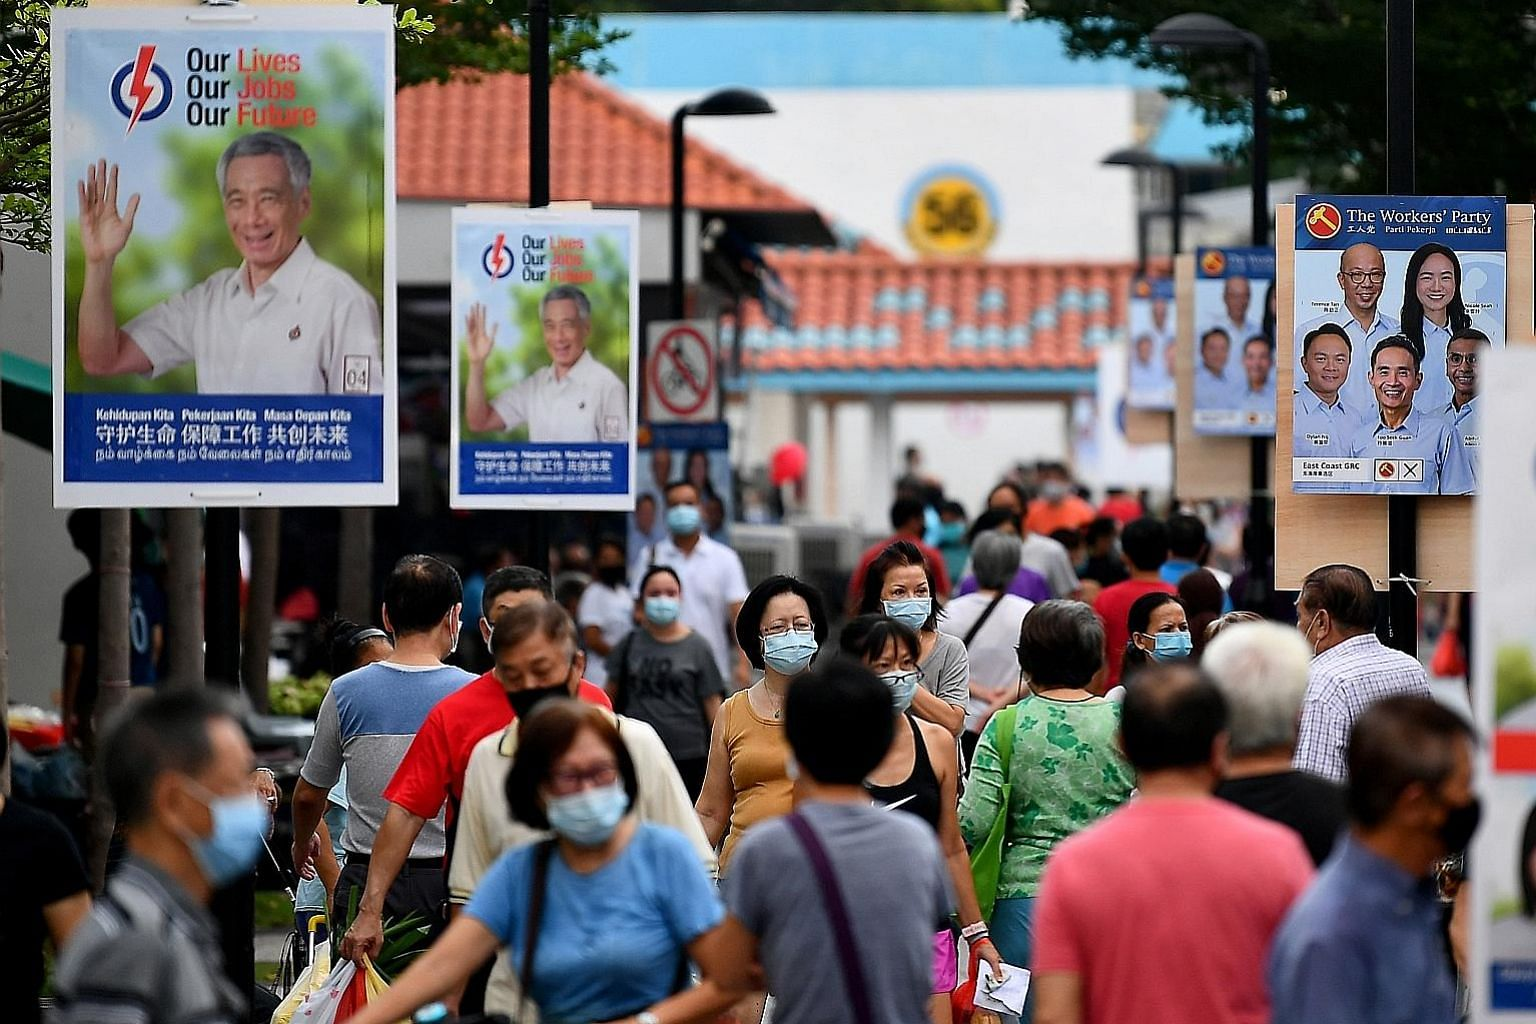 People's Action Party and Workers' Party campaign posters in East Coast GRC. With day eight of the campaign today, Singapore is heading into the final days of a rather unusual election, with its respectful tone. Rather than focus on personalities, th